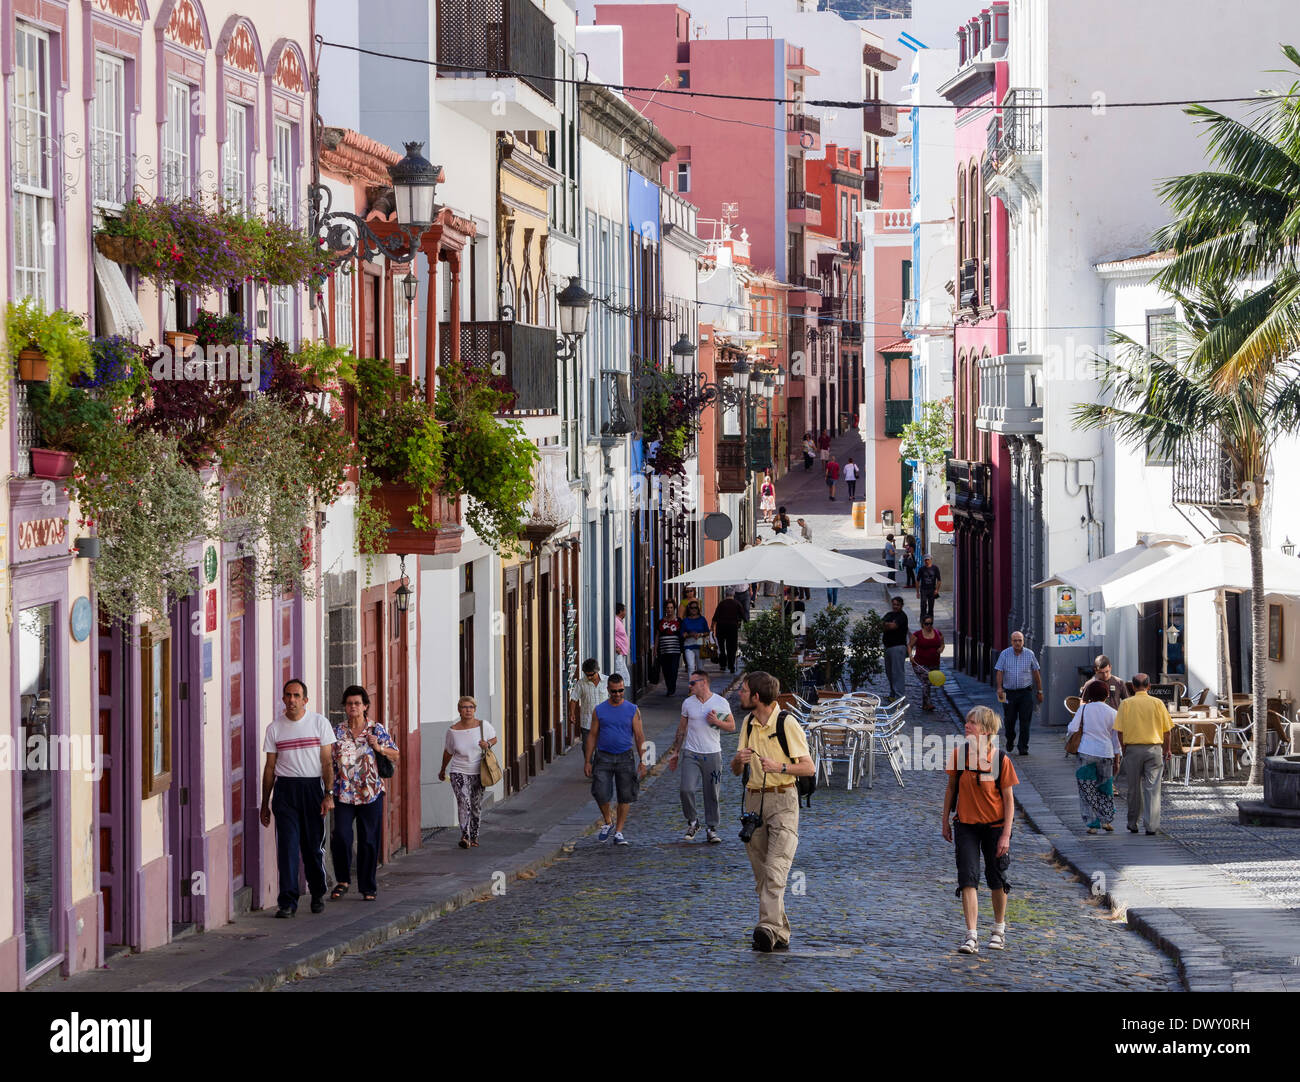 The shopping street Calle Perez de Brito at Santa Cruz, La Palma, Canary Islands, Spain. - Stock Image